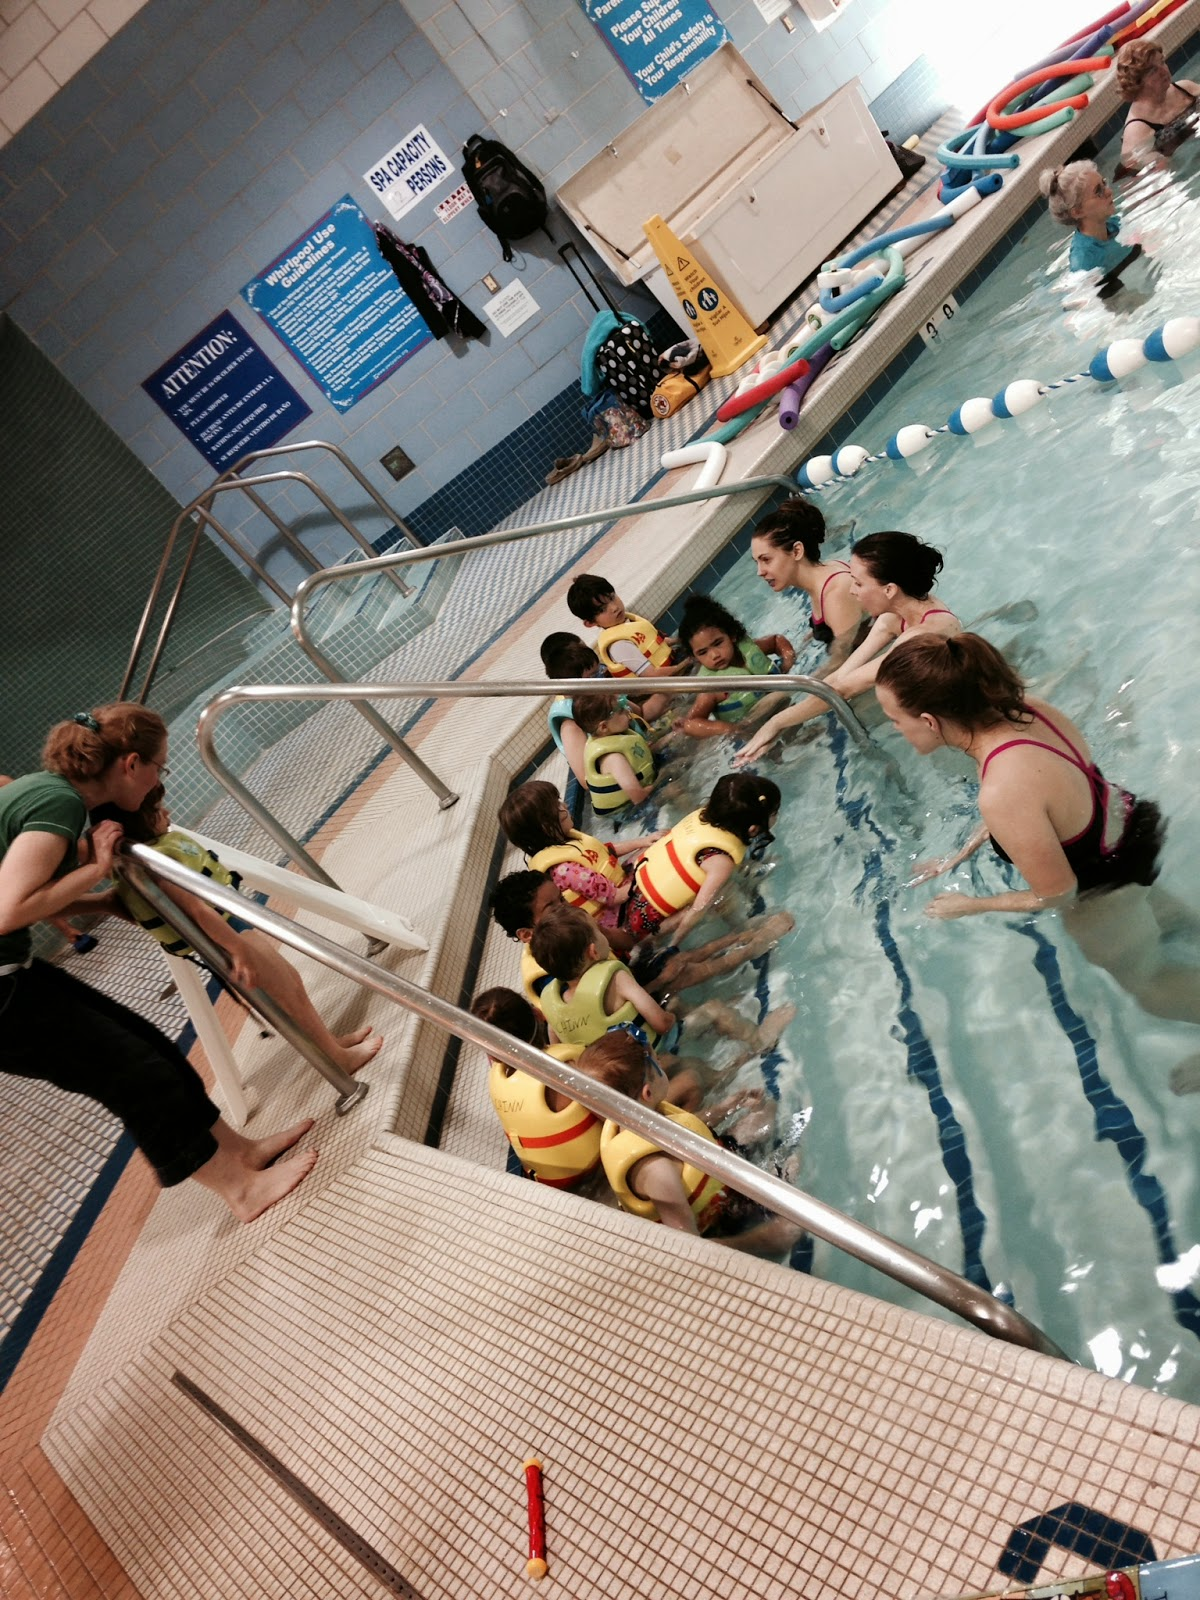 My kids swimming lessons.